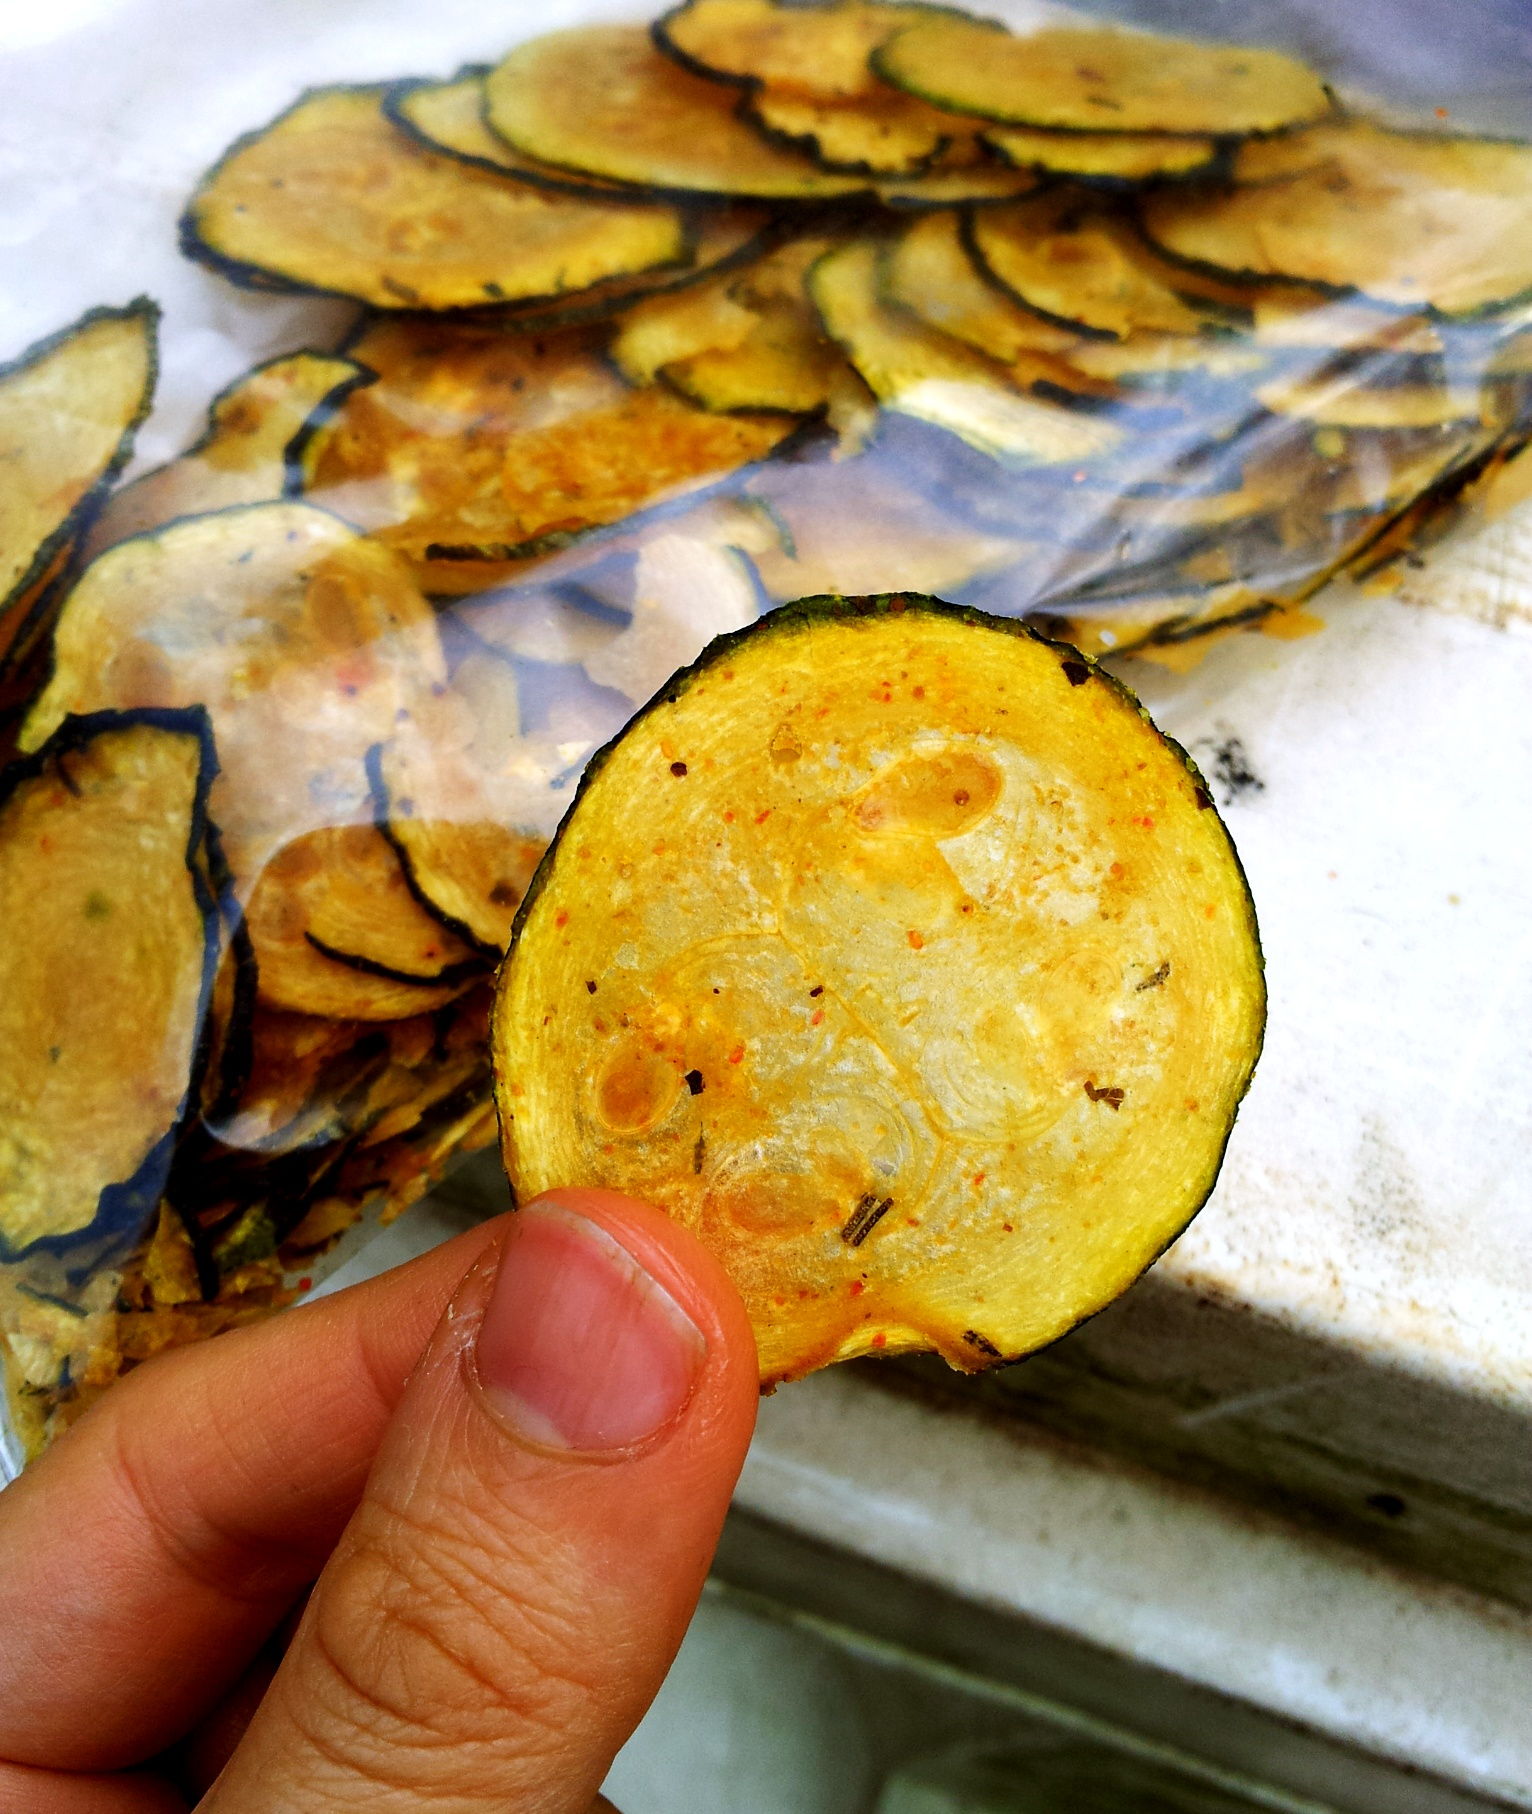 ... these amazing raw zucchini chips and knew I had to share the recipe